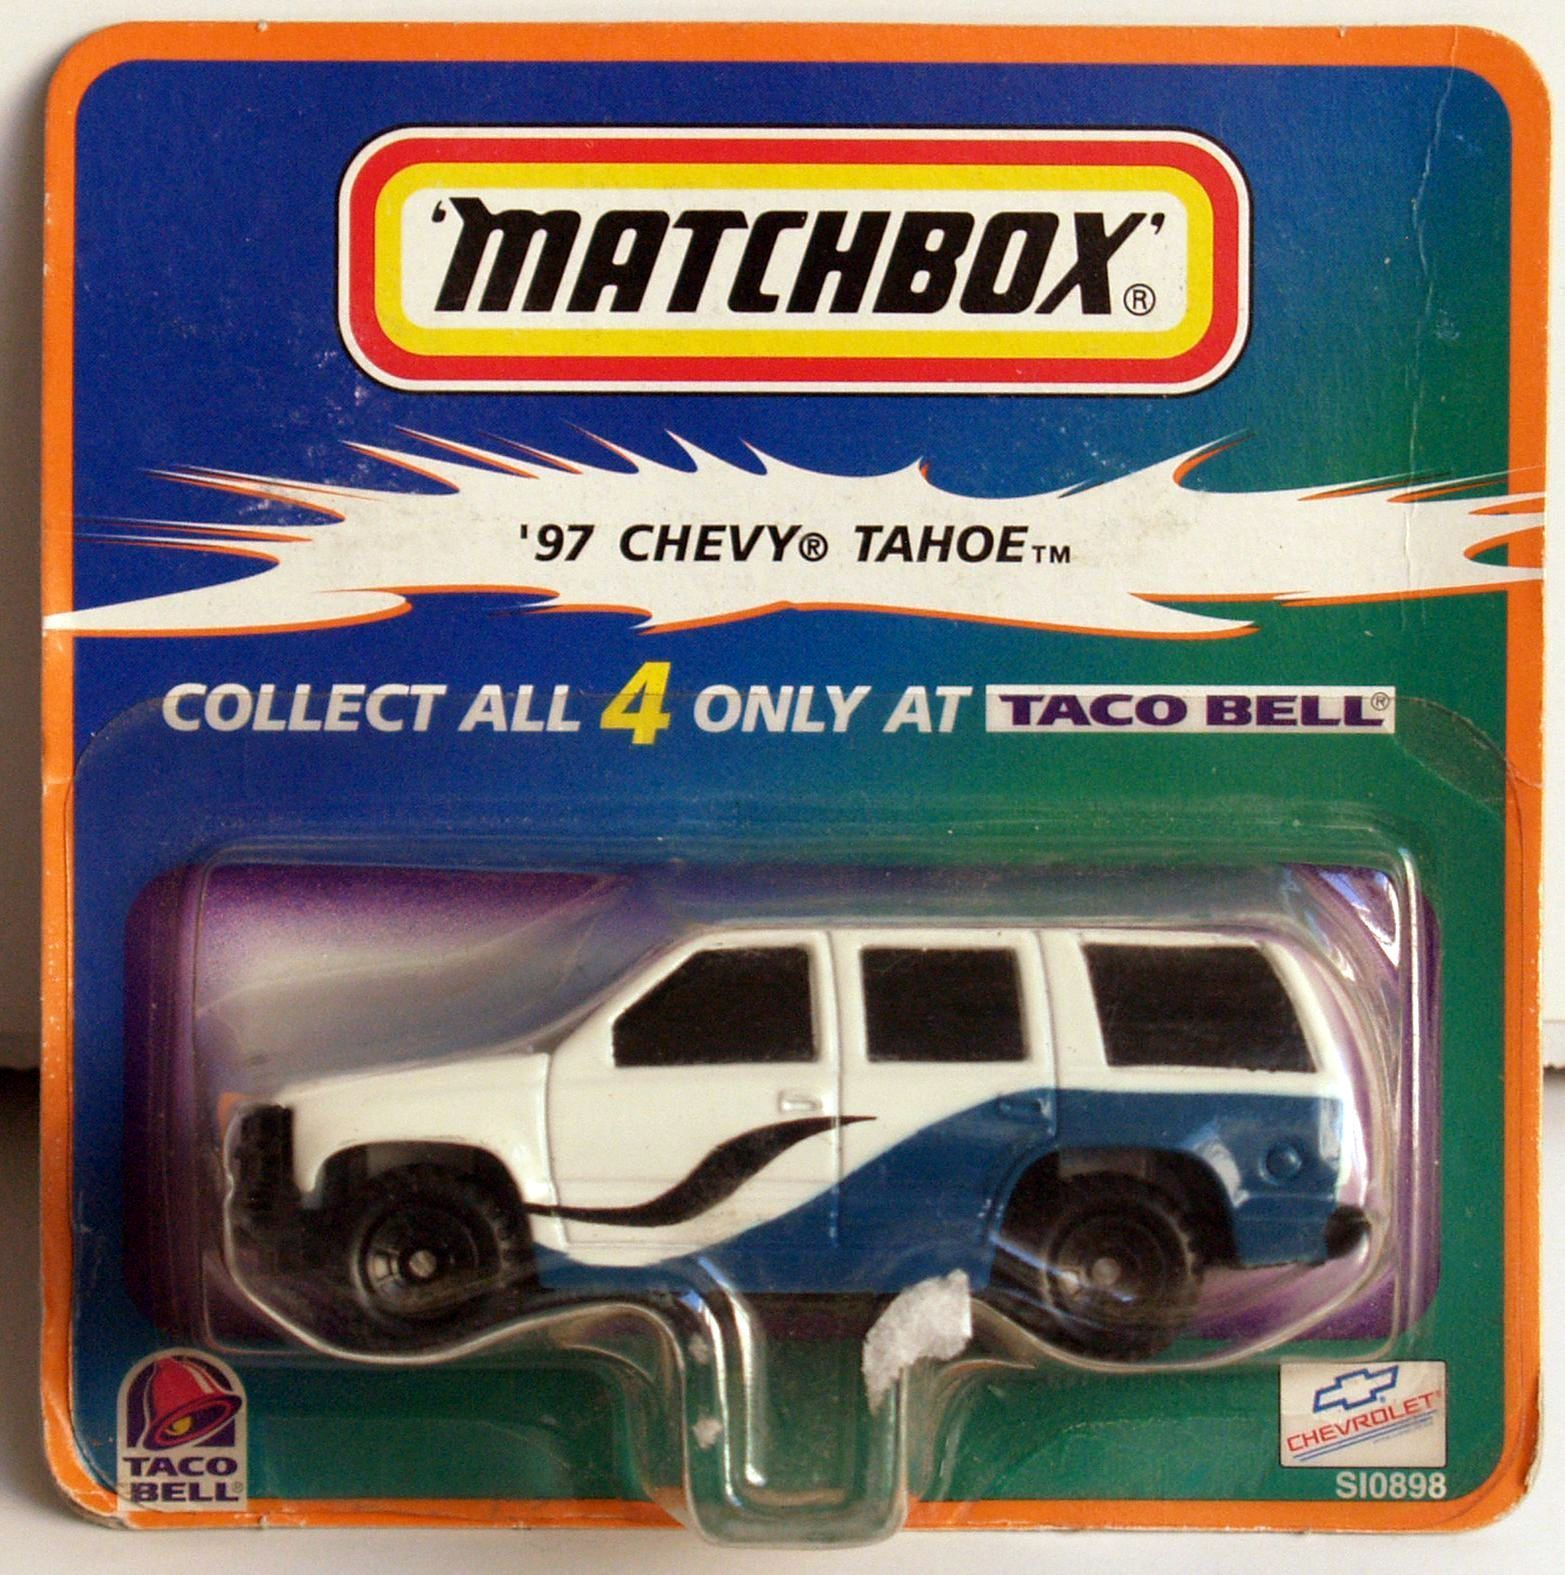 MATCHBOX TACO BELL '97 CHEVY TAHOE